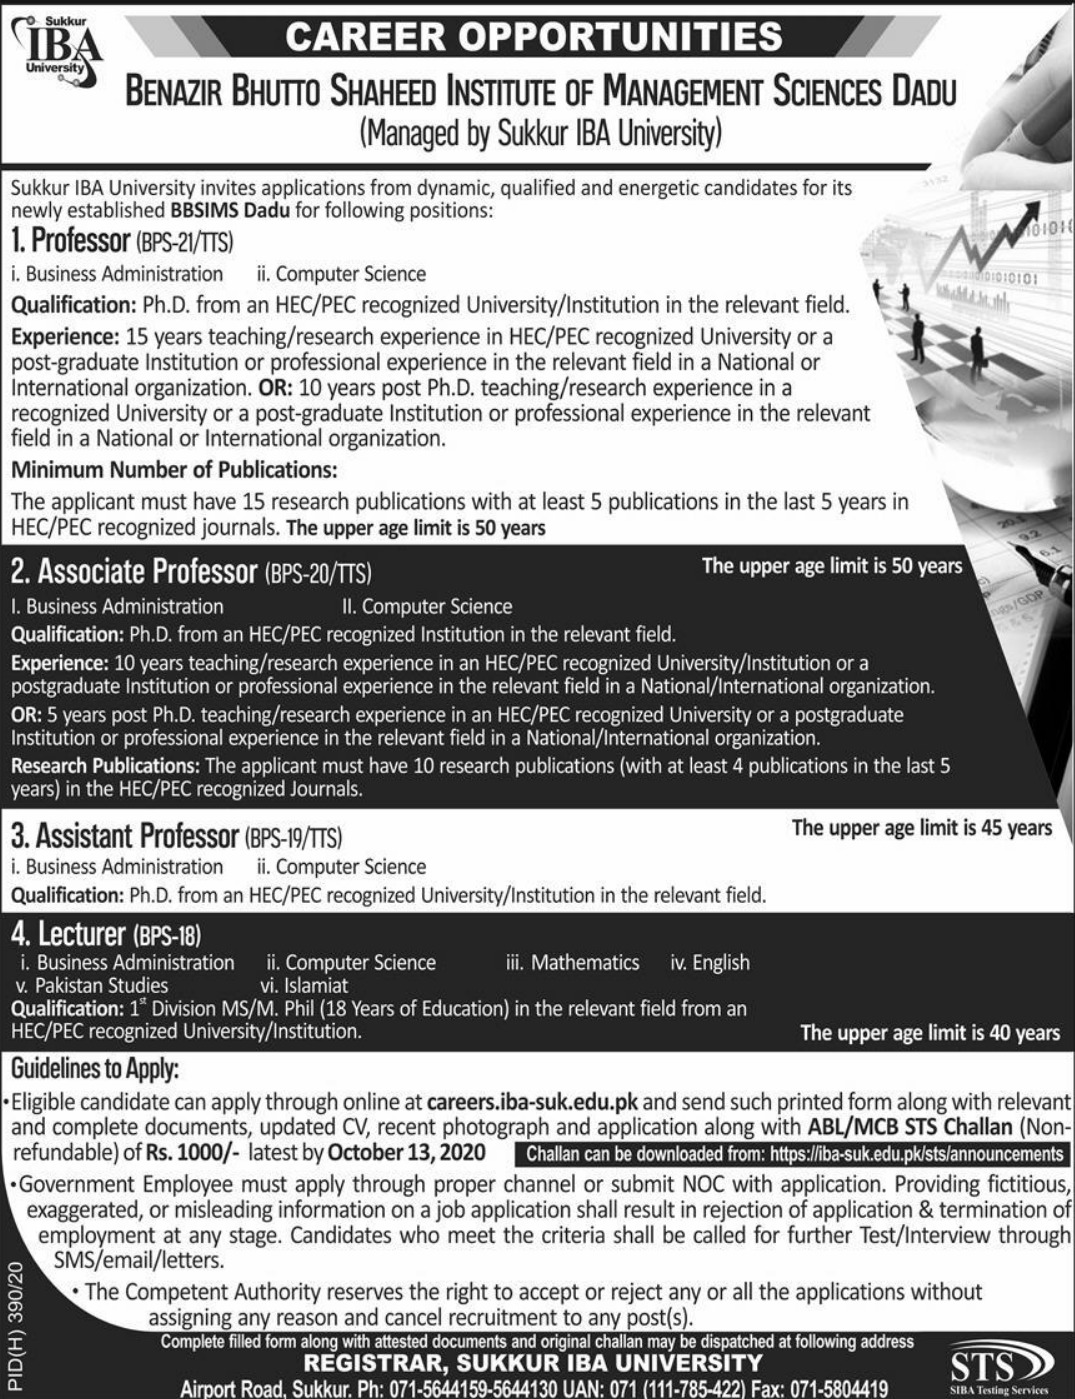 Benazir Bhutto Shaheed Institute of Management Sciences Dadu Jobs September 2020